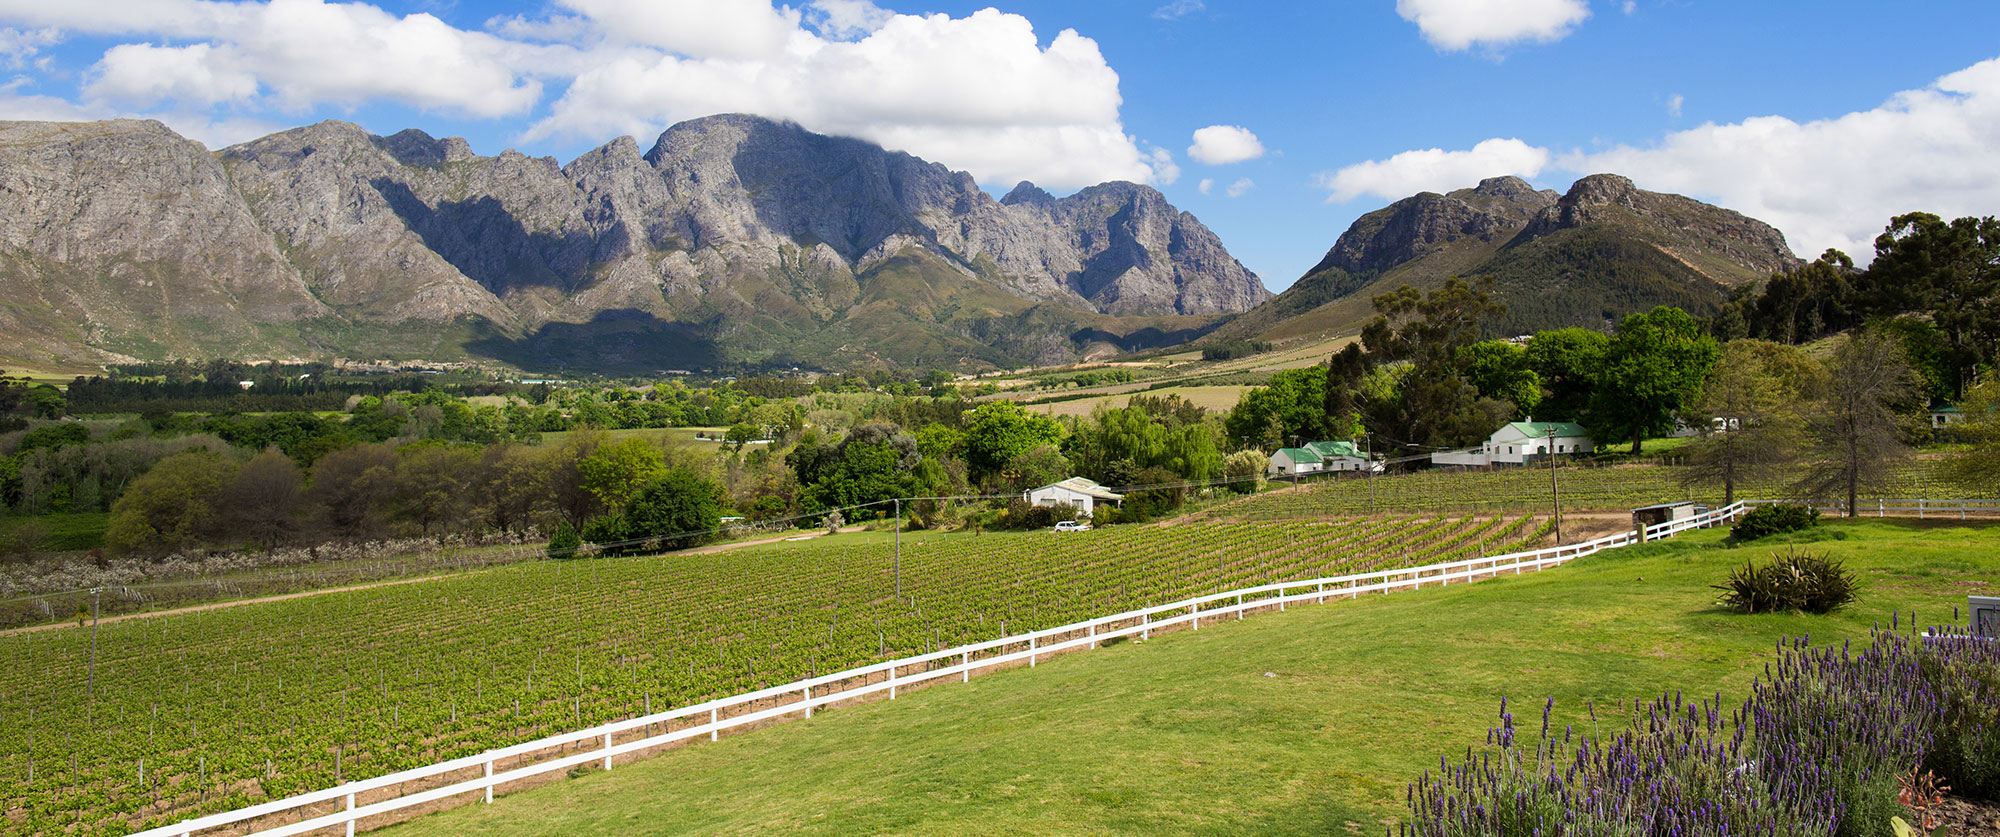 South Africa Safari and Wine Vacation - Mont Rochelle Cape Winelands